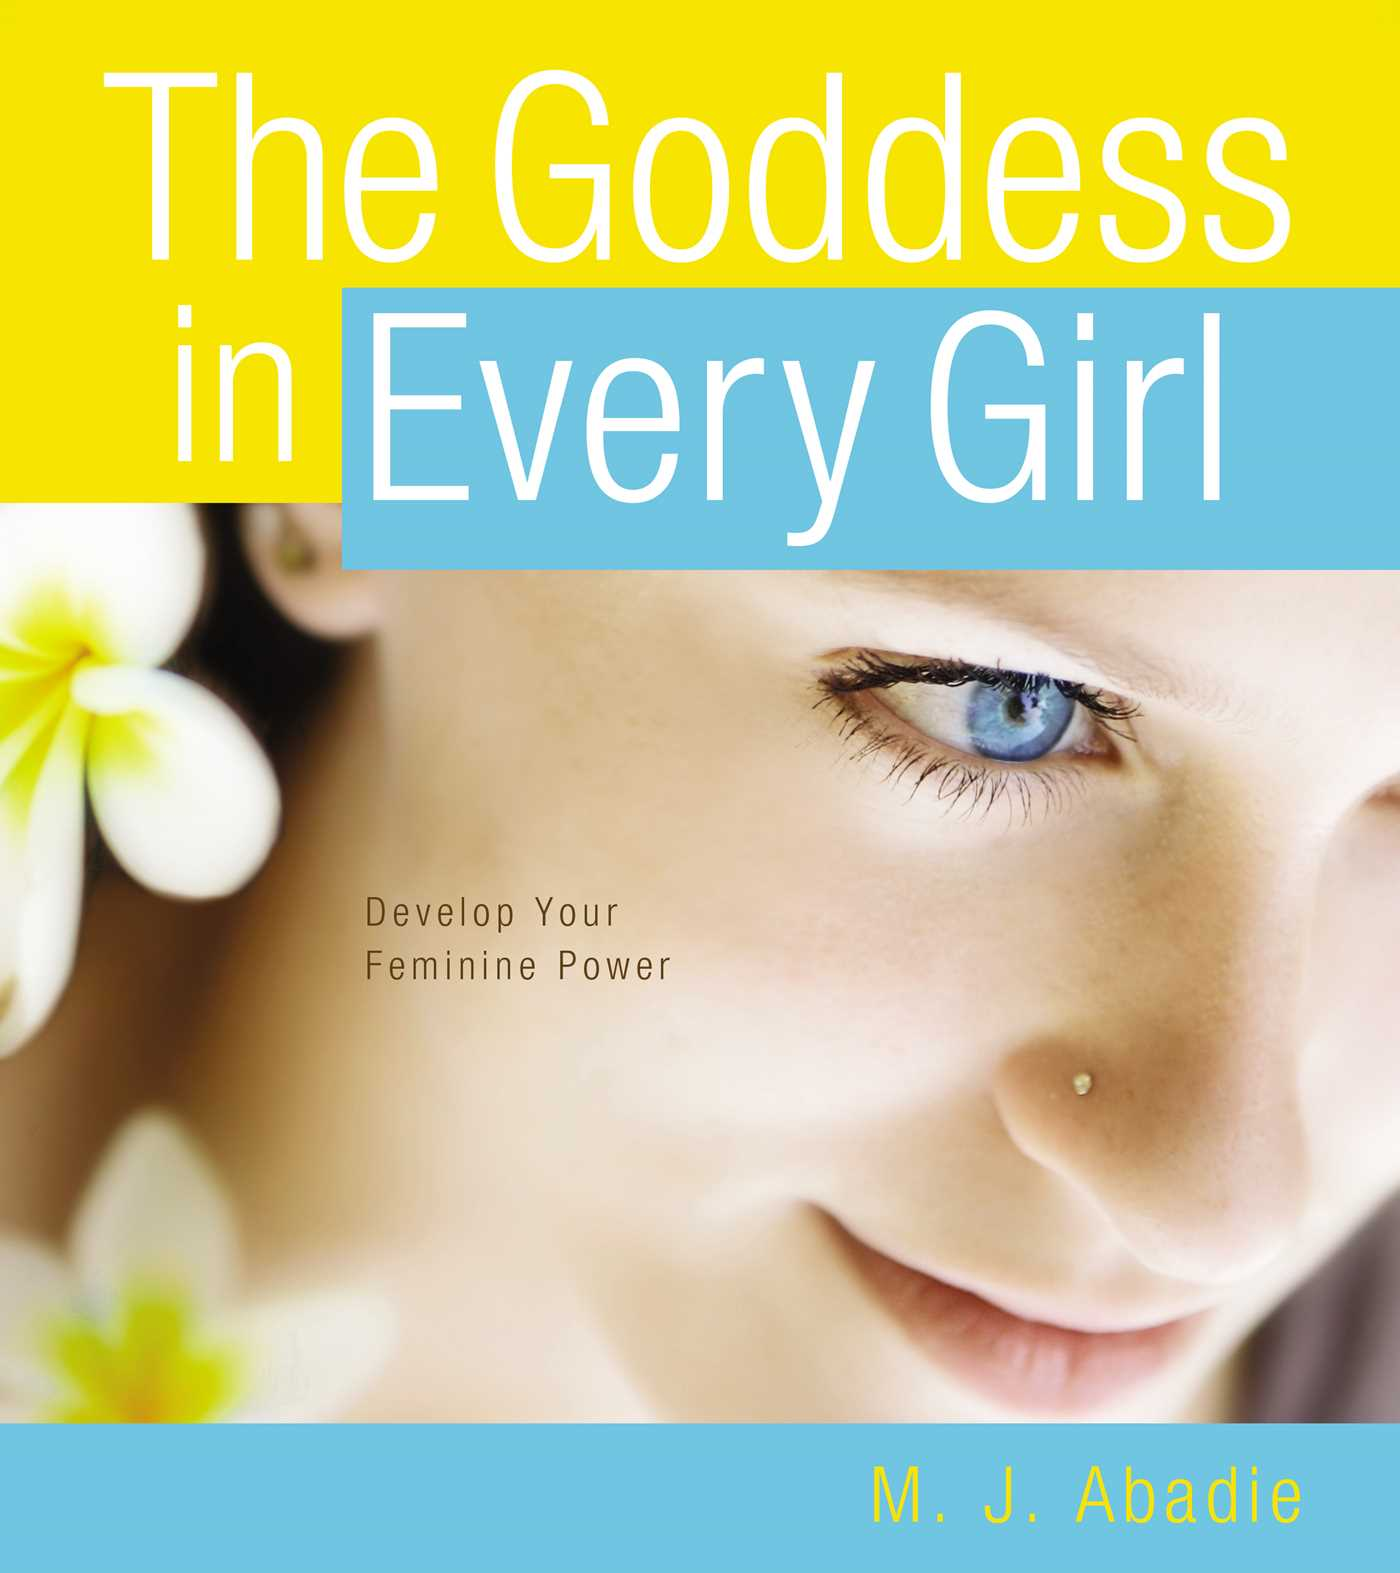 The goddess in every girl 9781442484696 hr